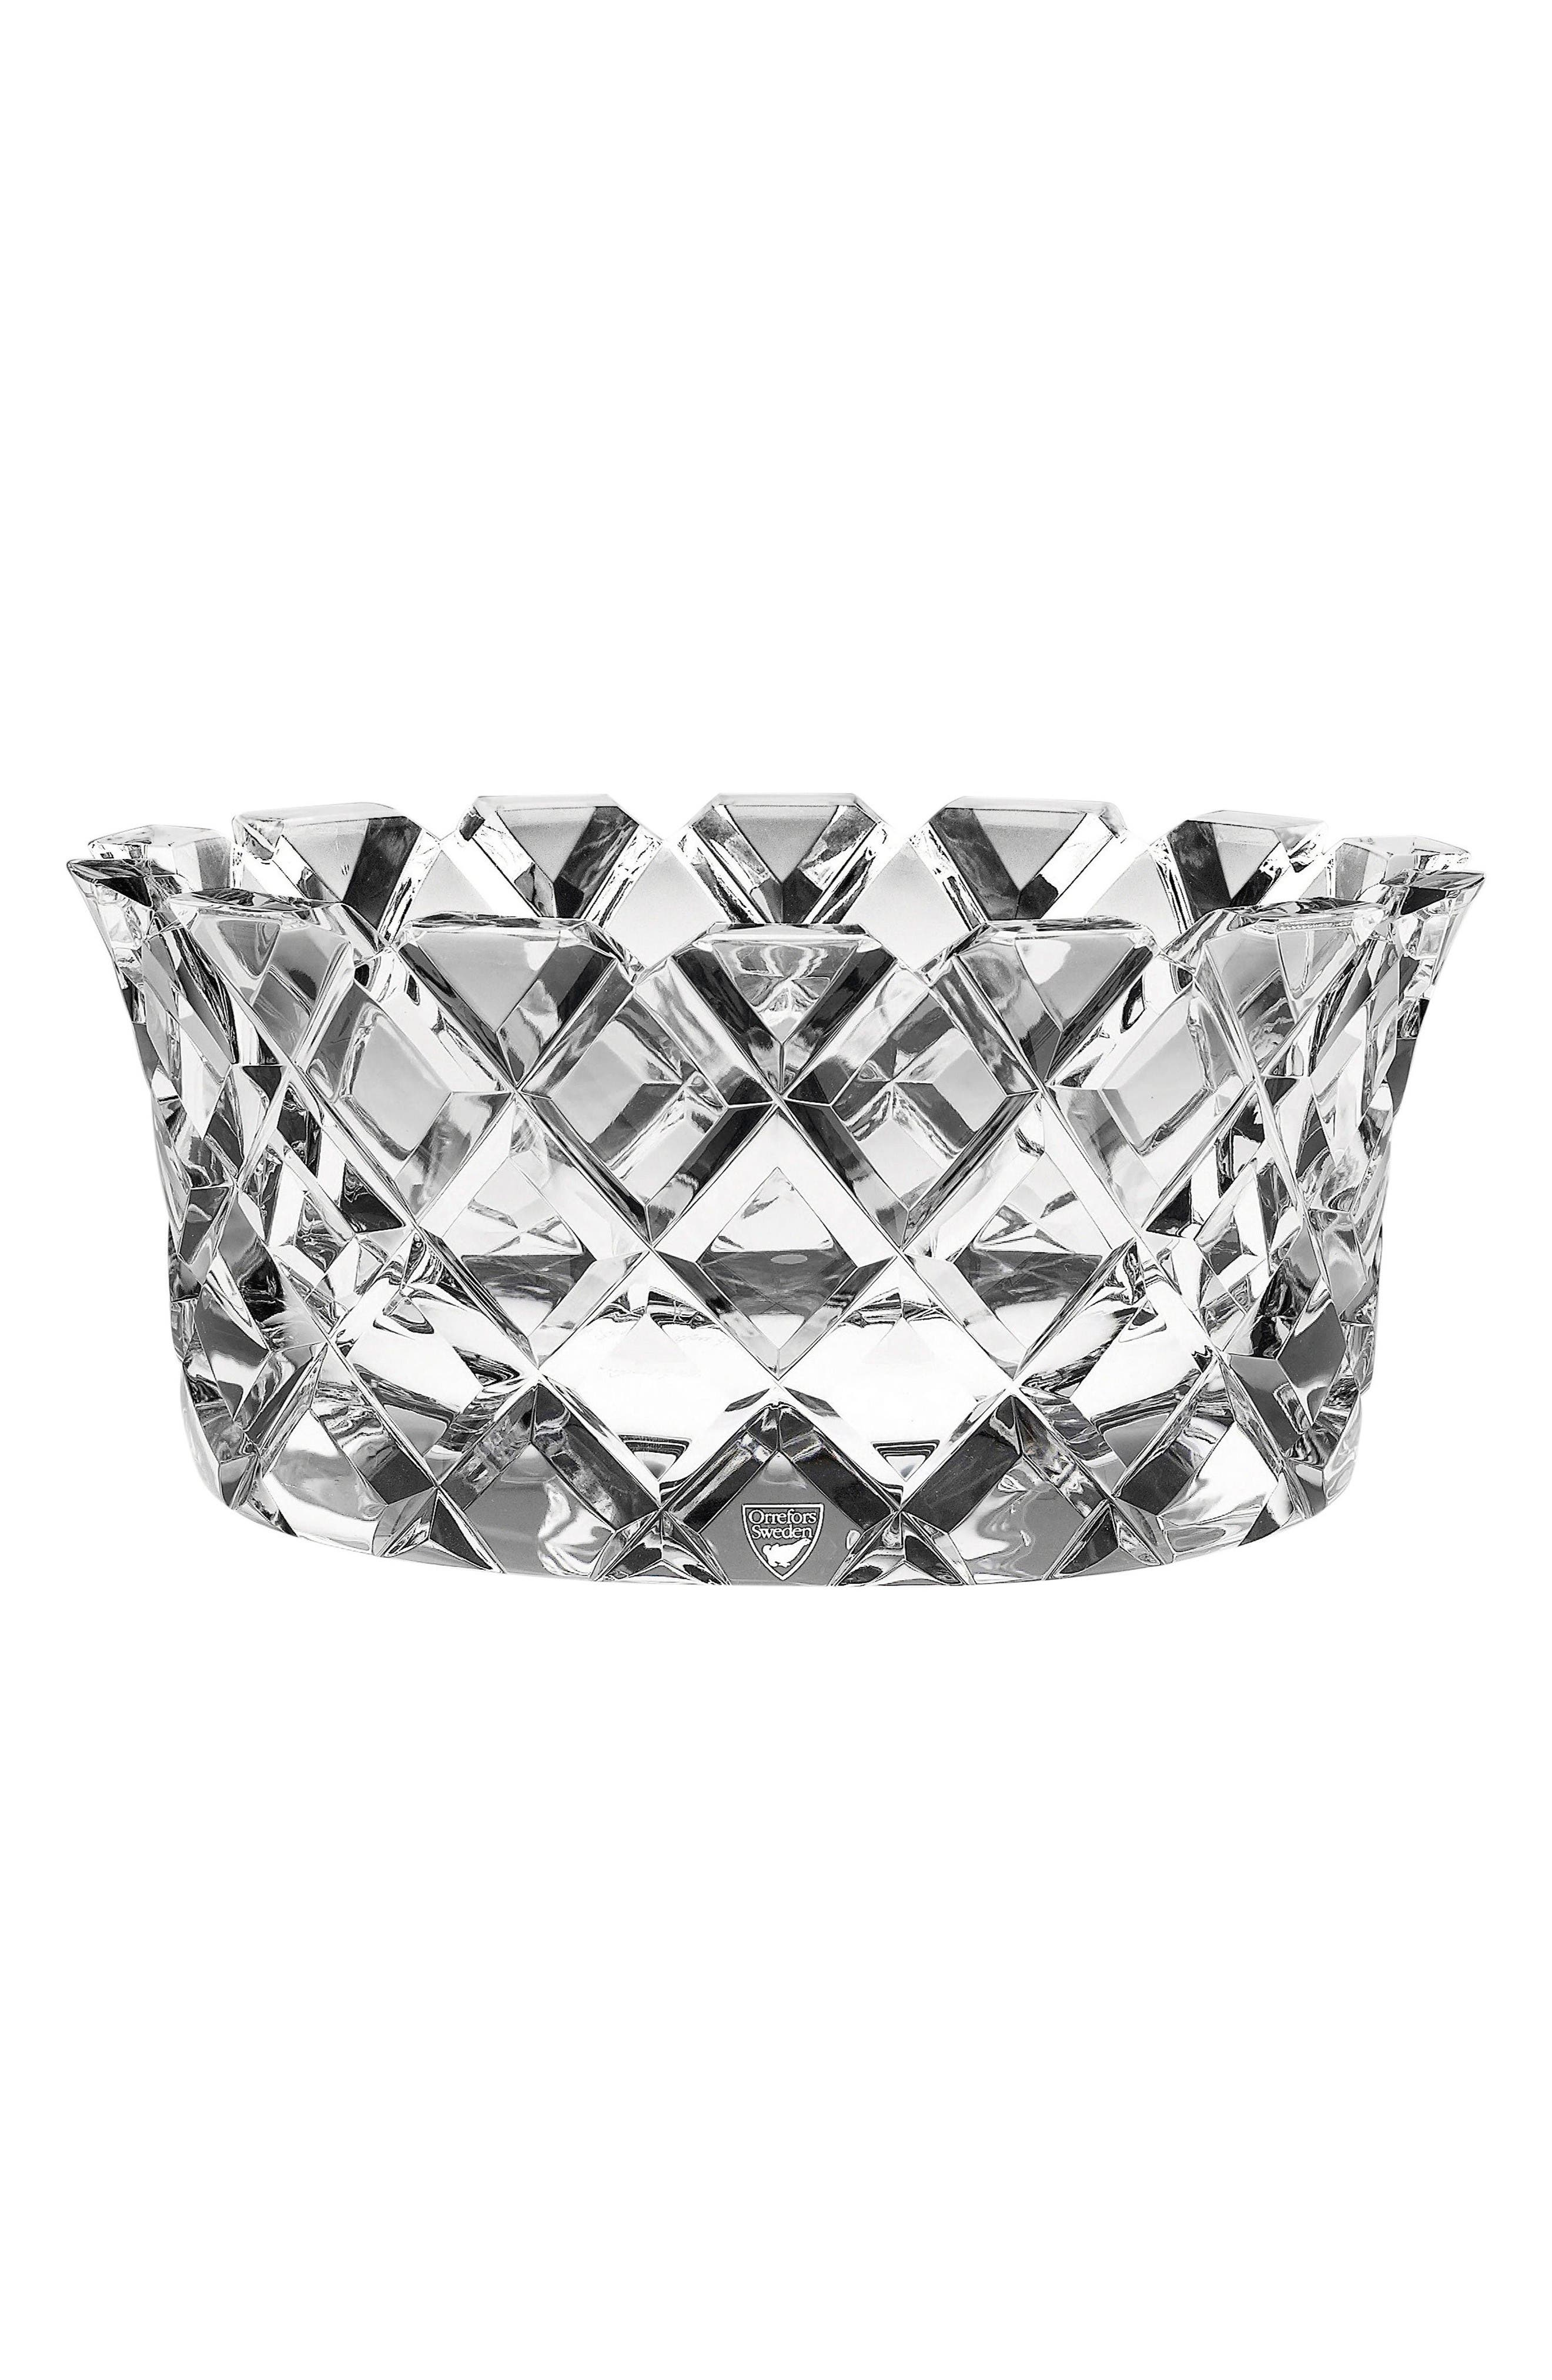 Sofiero Low Crystal Bowl,                             Main thumbnail 1, color,                             Clear